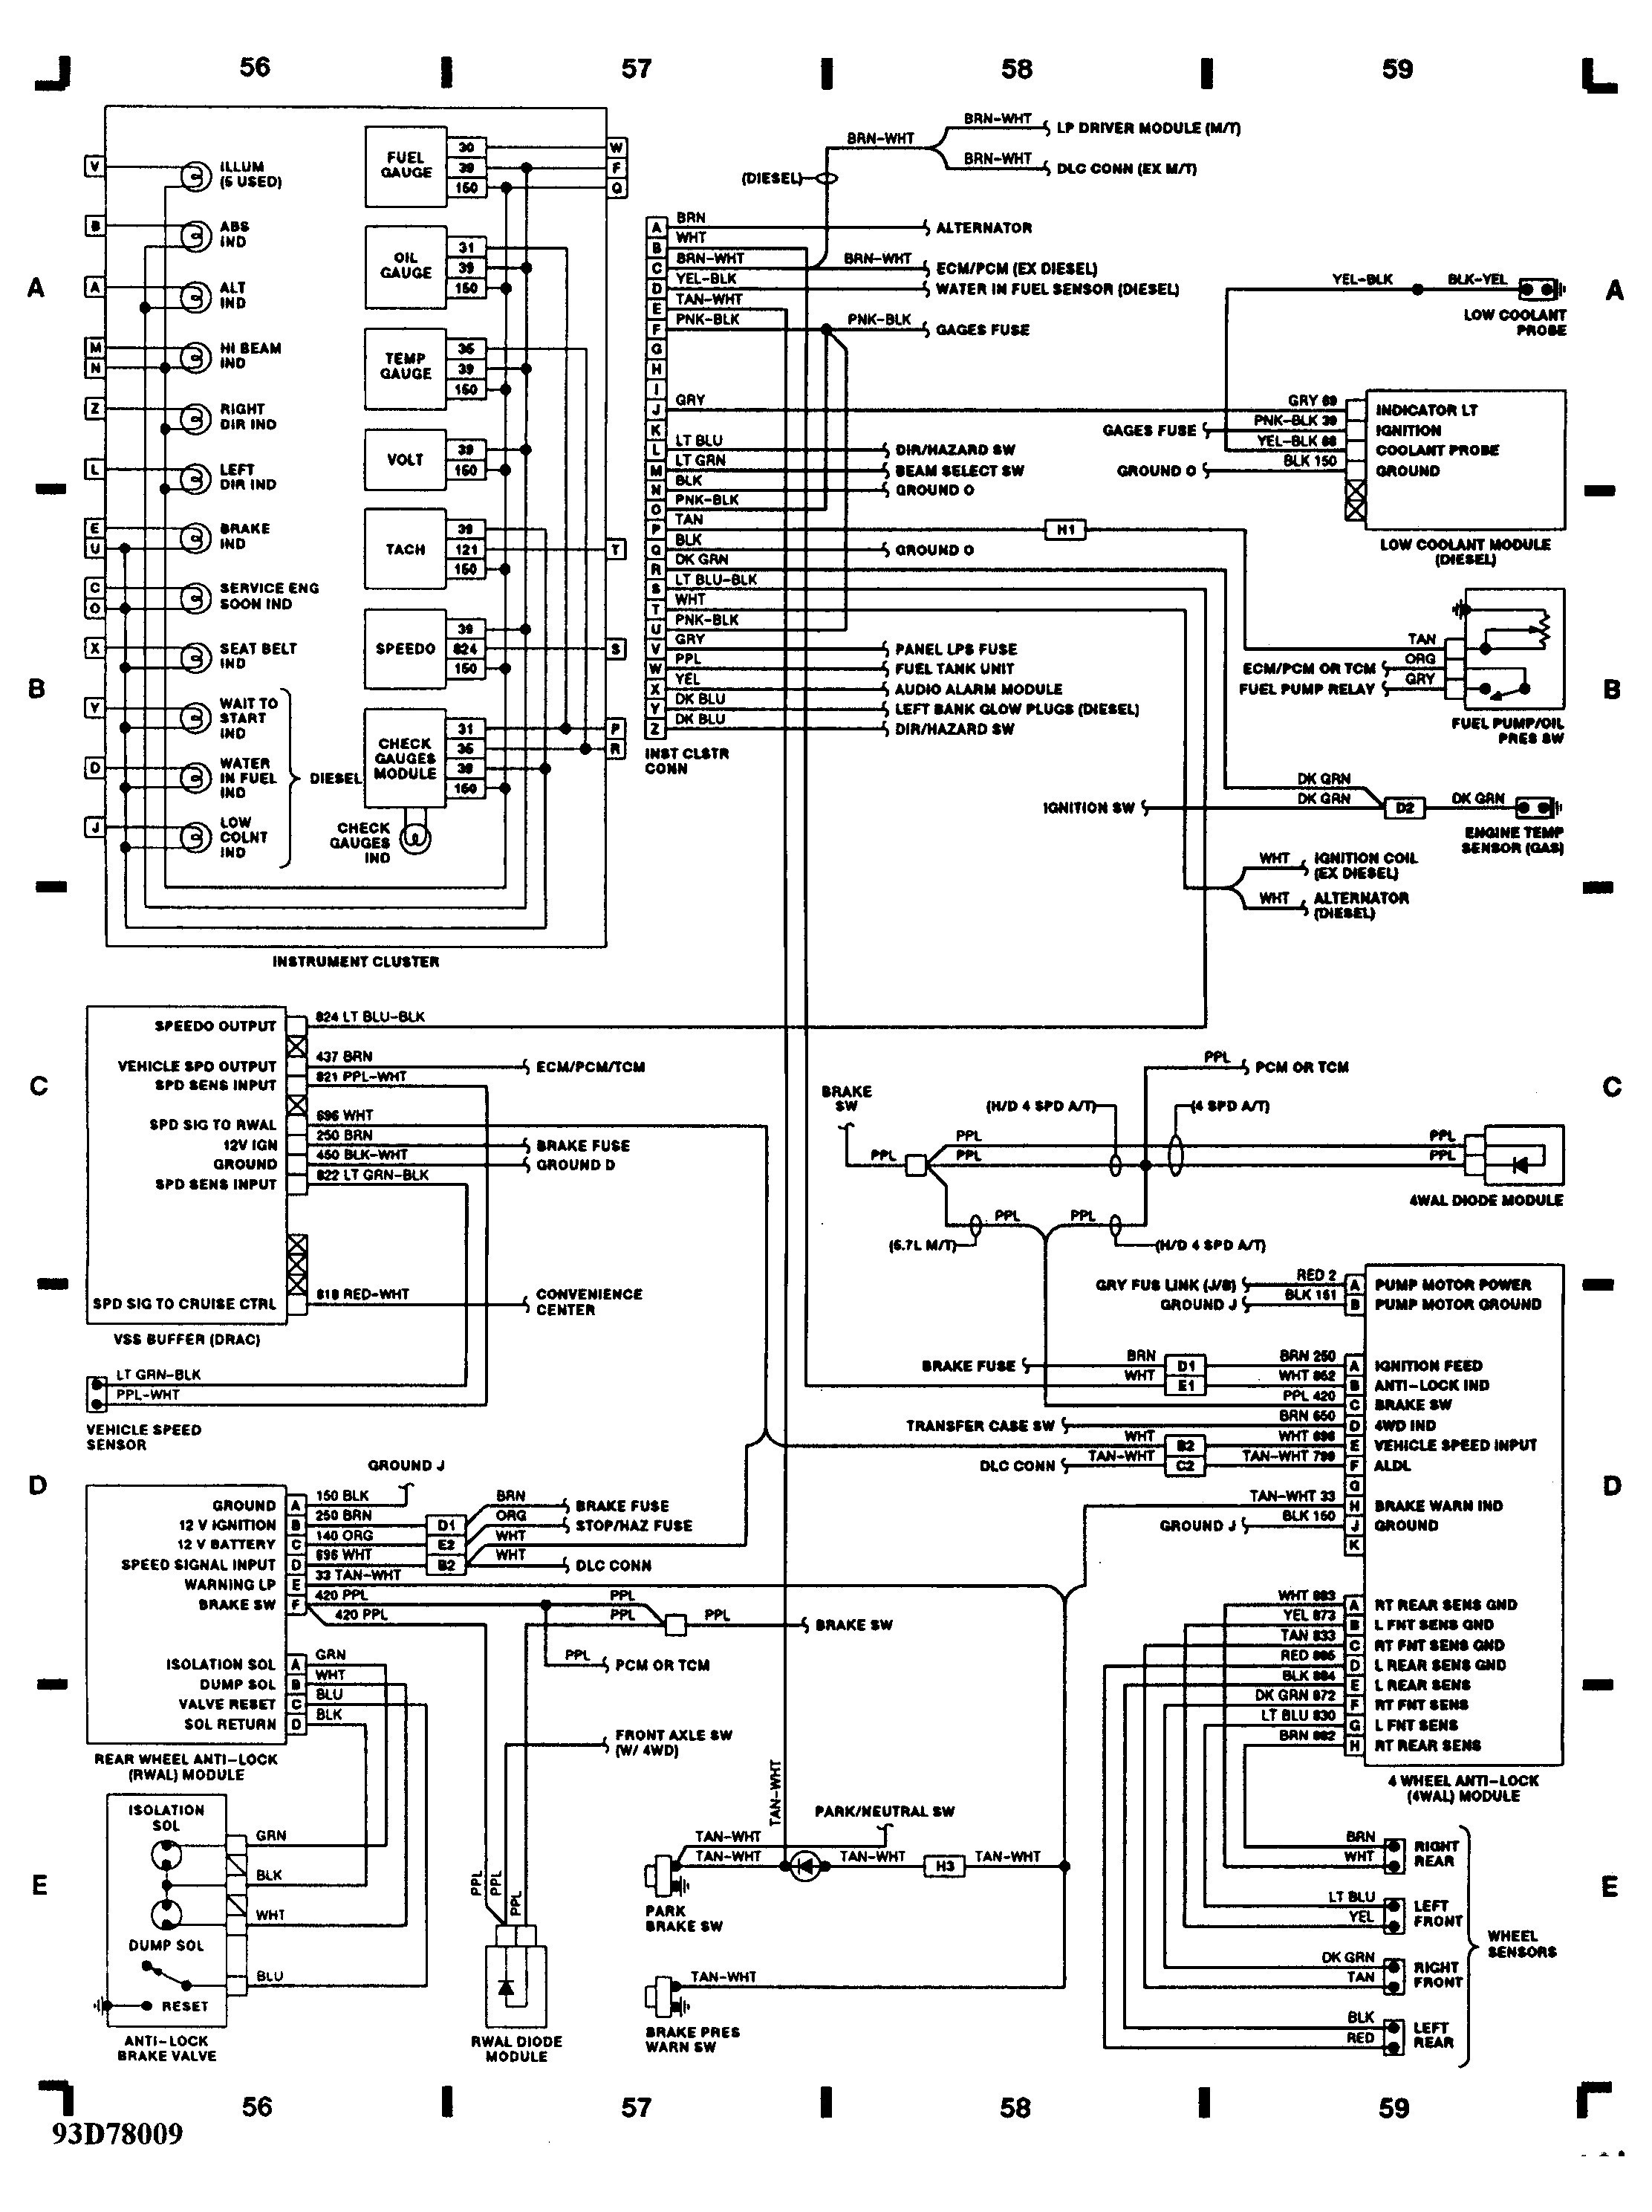 3800 Series 3 Wiring Diagram Library Pontiac Brakes Engine 8 Anything Diagrams U2022 Rh Optionfire Co 2000 Montana